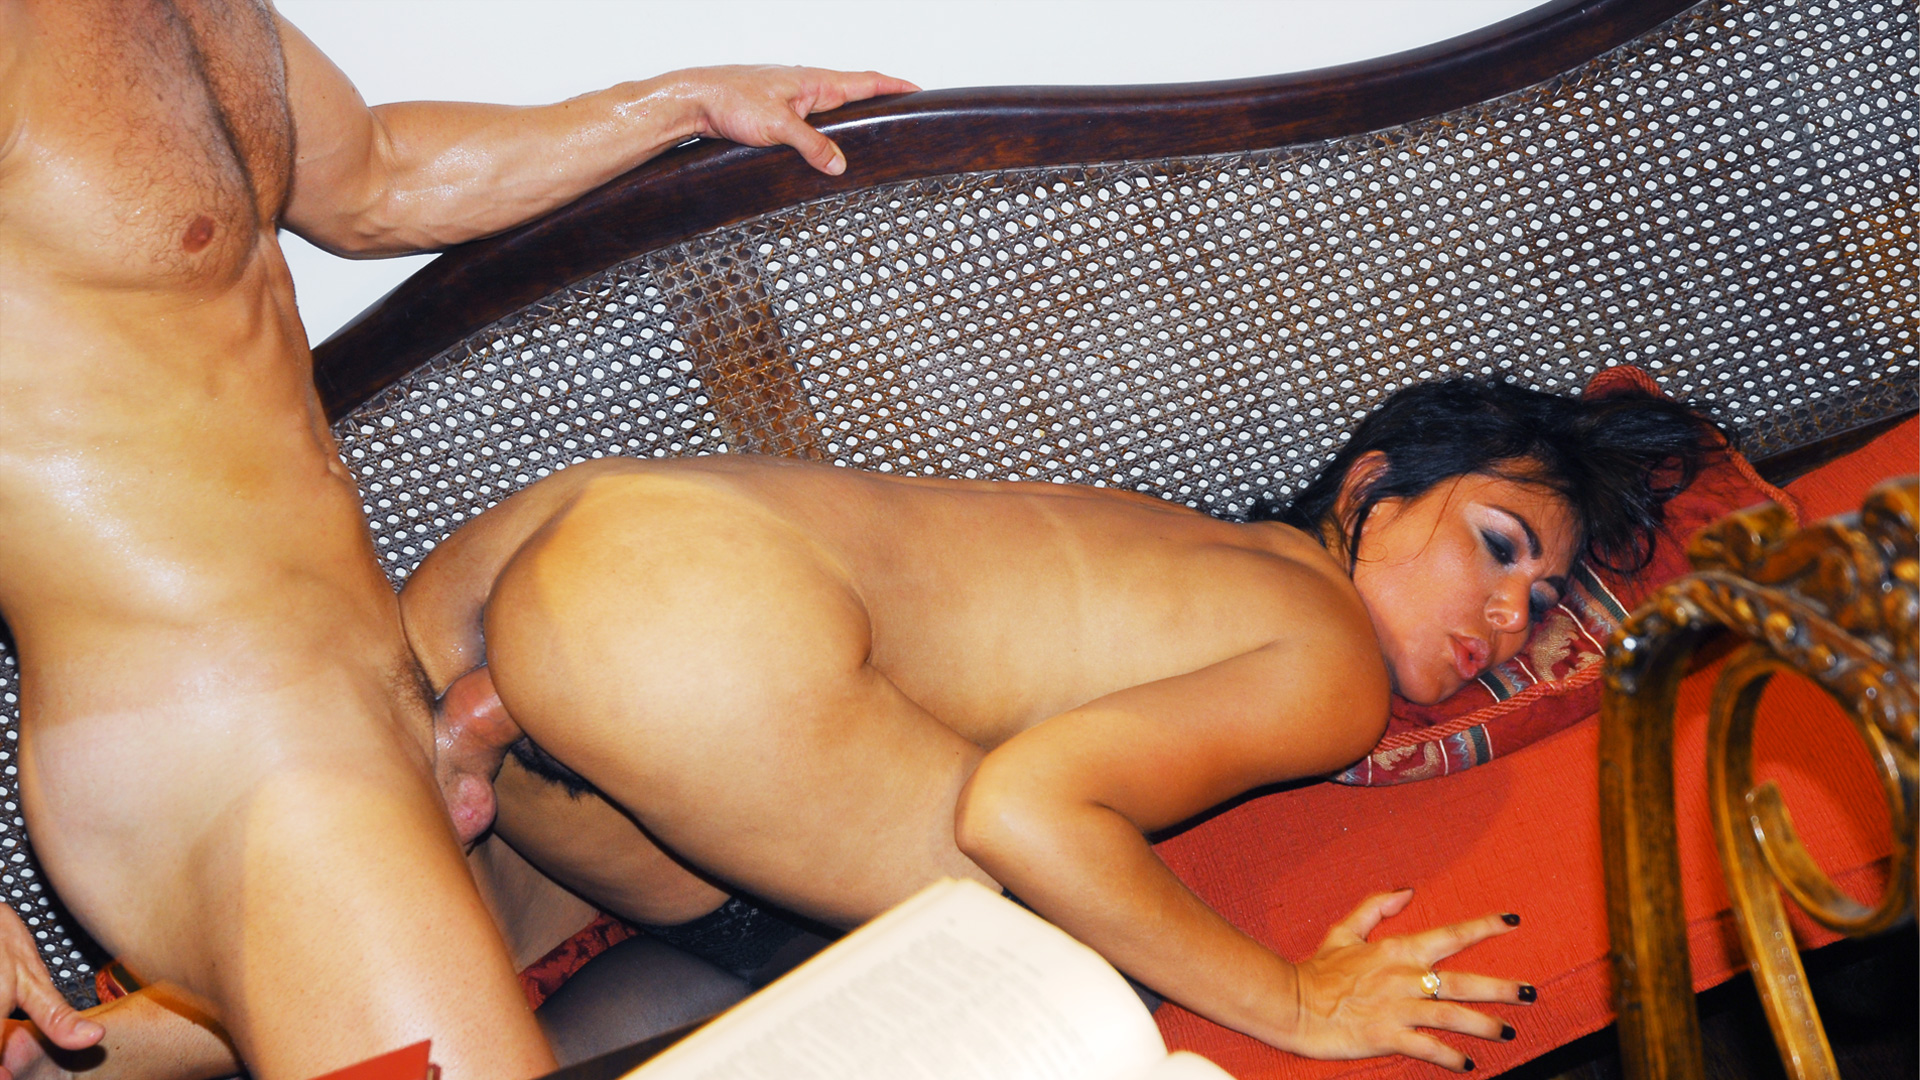 Layla Lopez Ends Up With Cum All Over Her Sexy Body